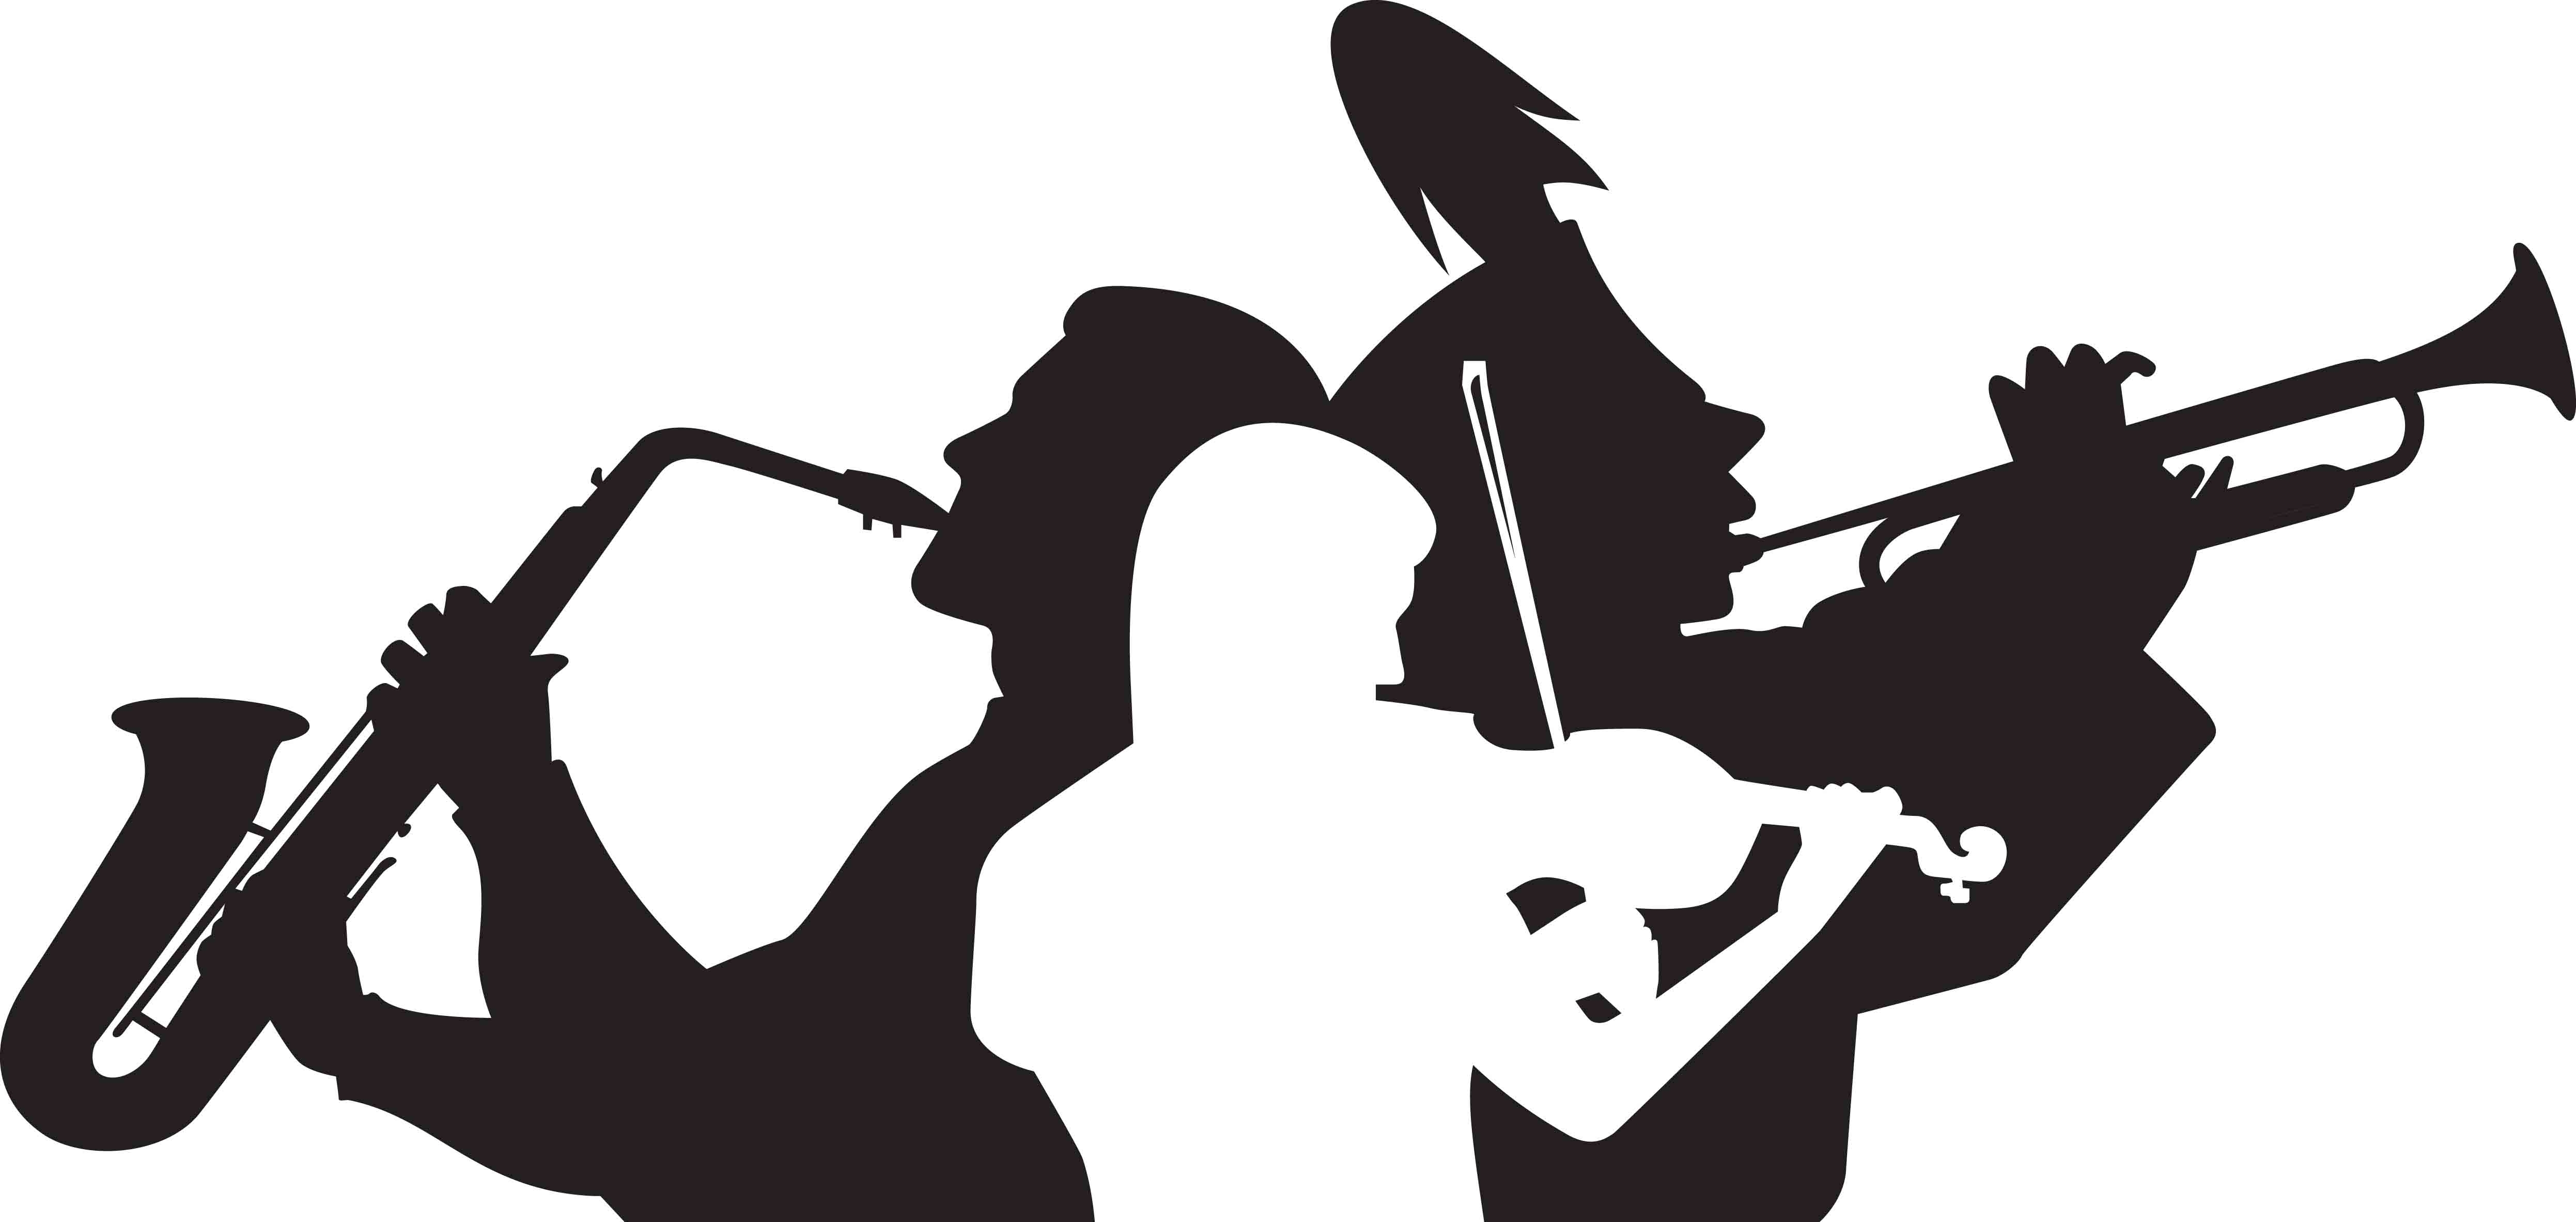 clipart music band marching instrumental sound arts chapel clipground cliparts